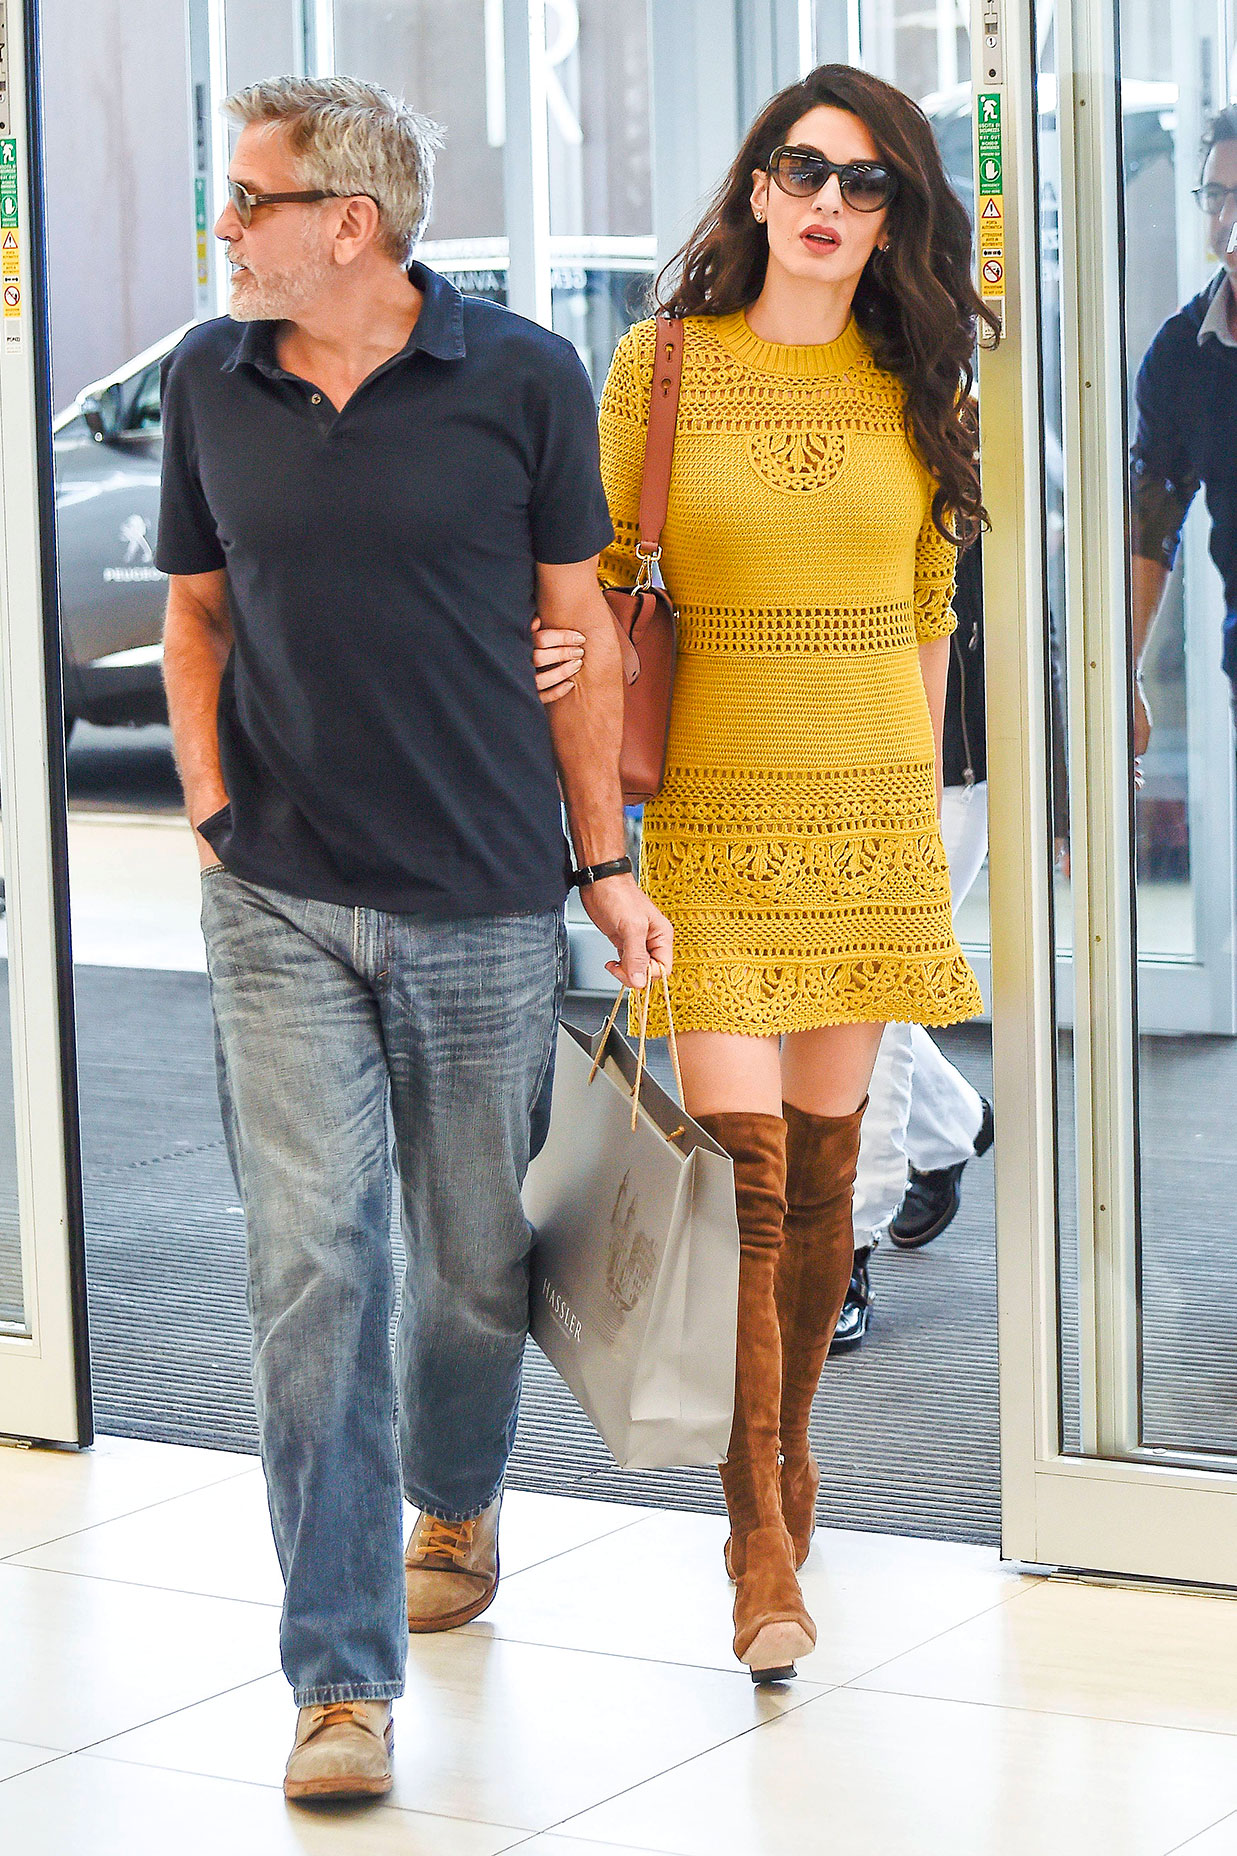 George Clooney and Amal Clooney - Spotted leaving a hotel in Rome (where she's staying to help hubby Clooney promote Catch 22 ) on May 14, 2019, the civil rights lawyer looked seriously chic in a crocheted yellow minidress with over-the-knee brown suede boots.